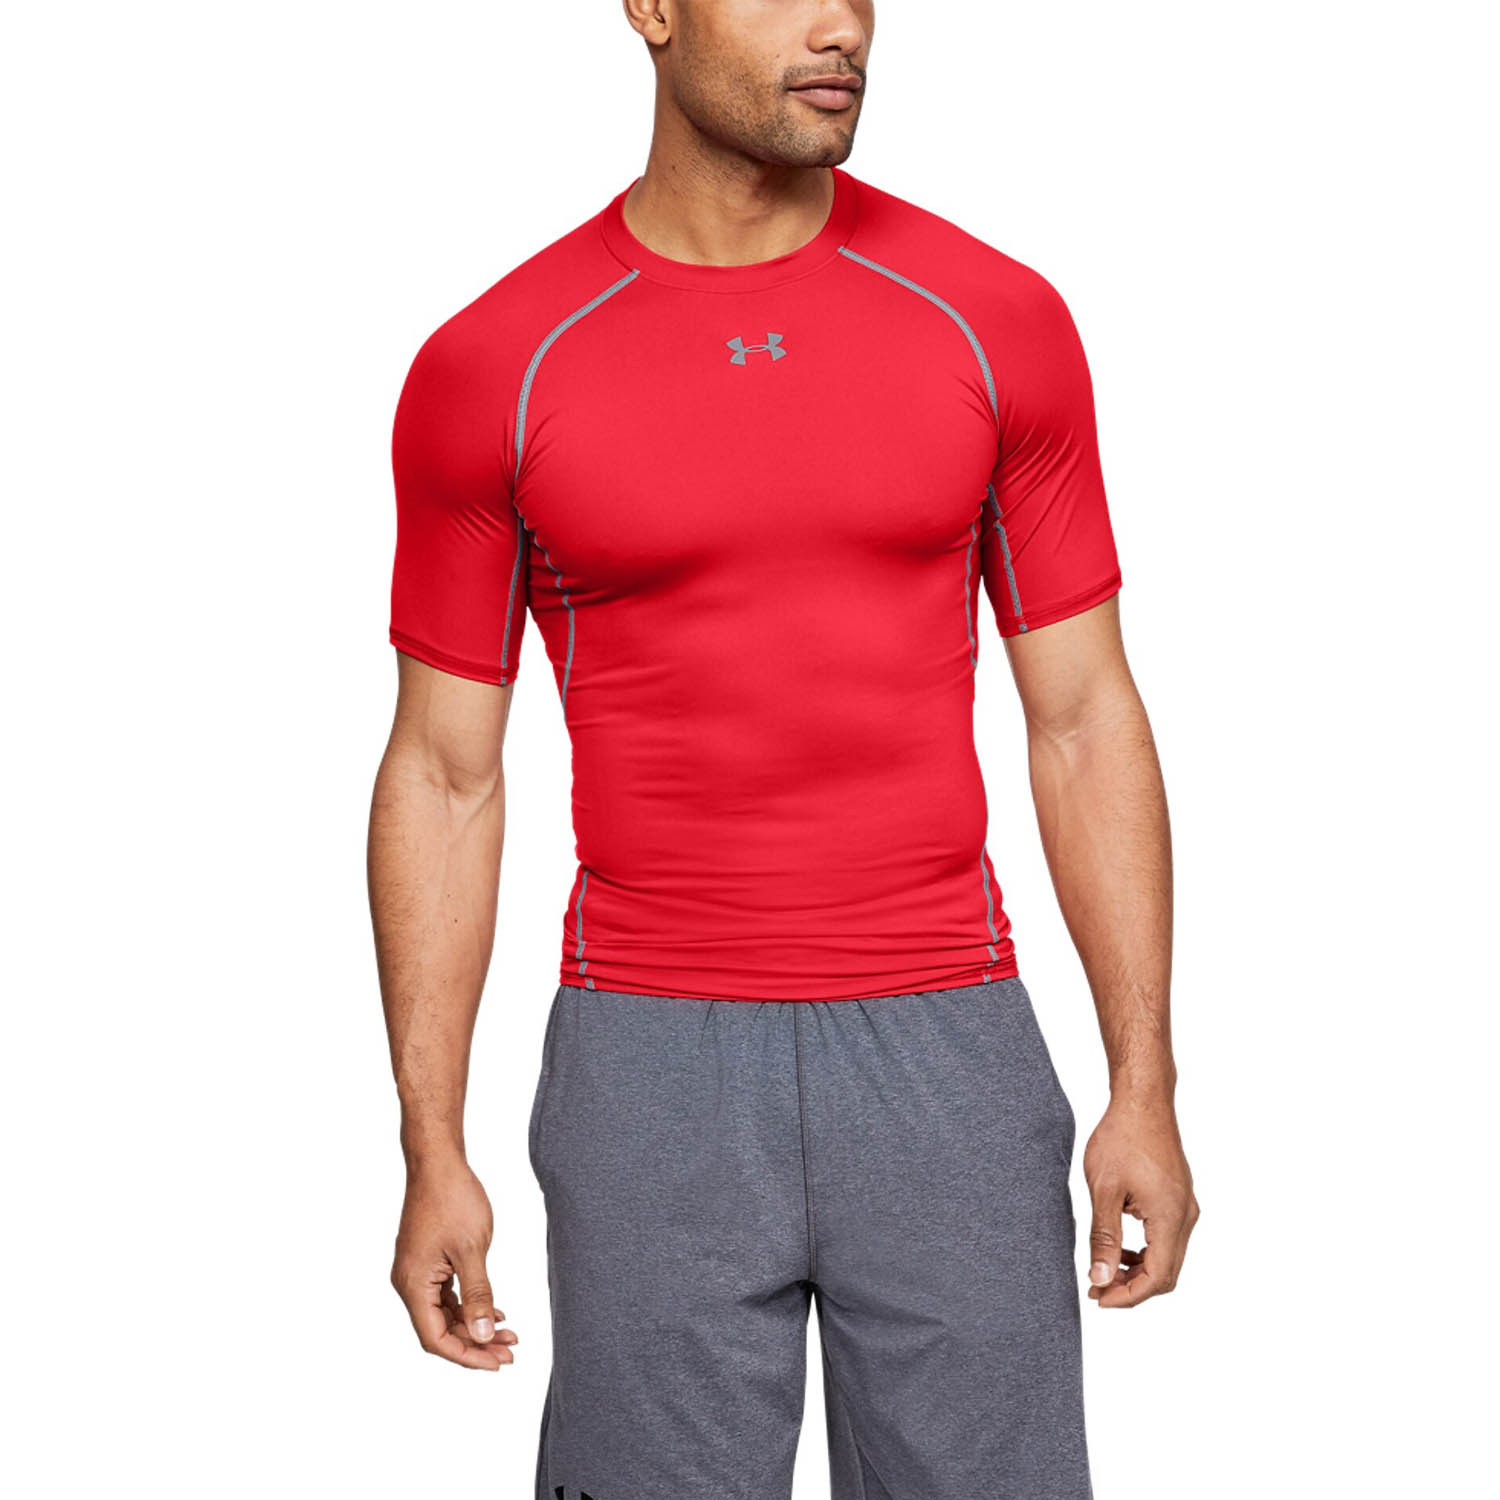 Under Armour HeatGear Armour Compression T-Shirt - Red